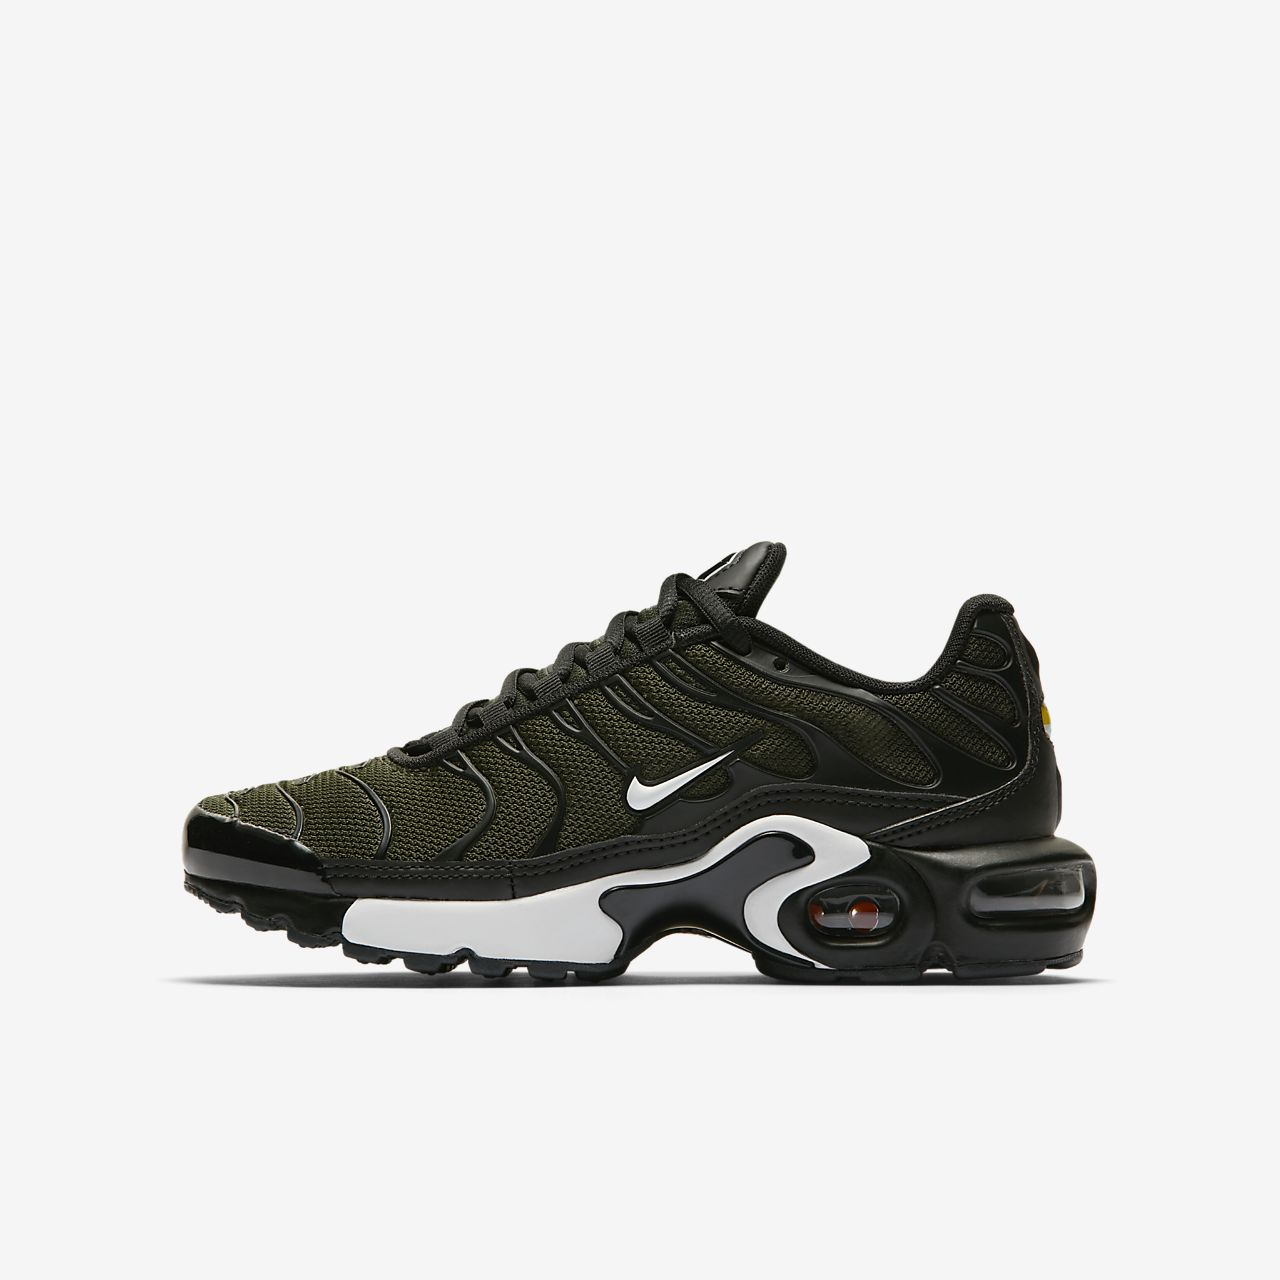 nike air max plus grønn camo